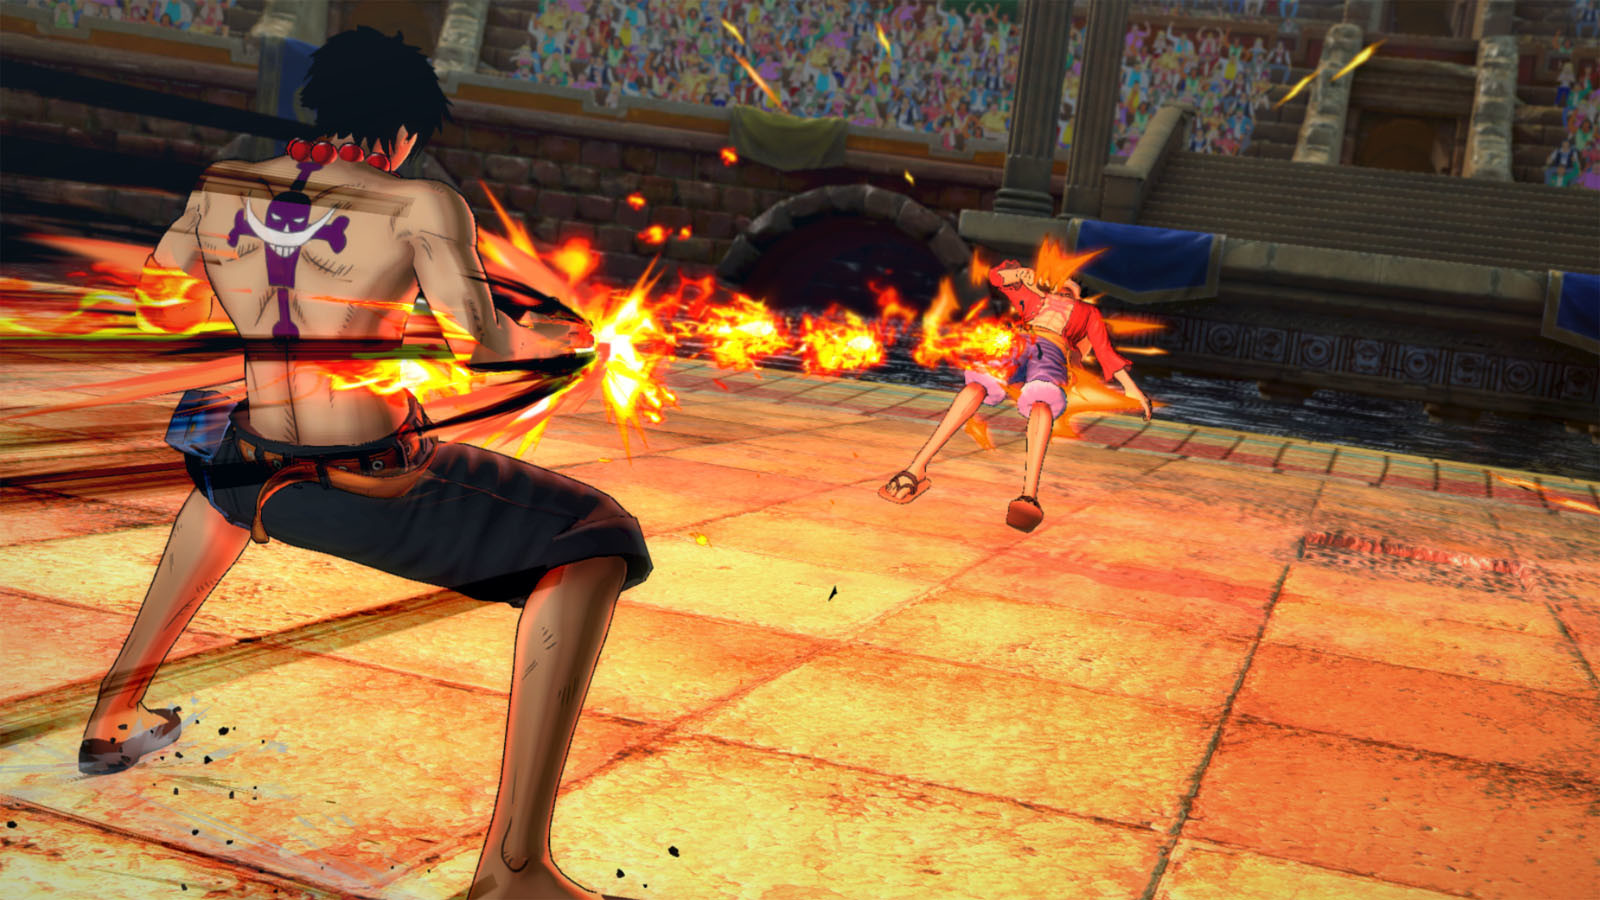 One Piece Burning Blood Steam Key for PC - Buy now